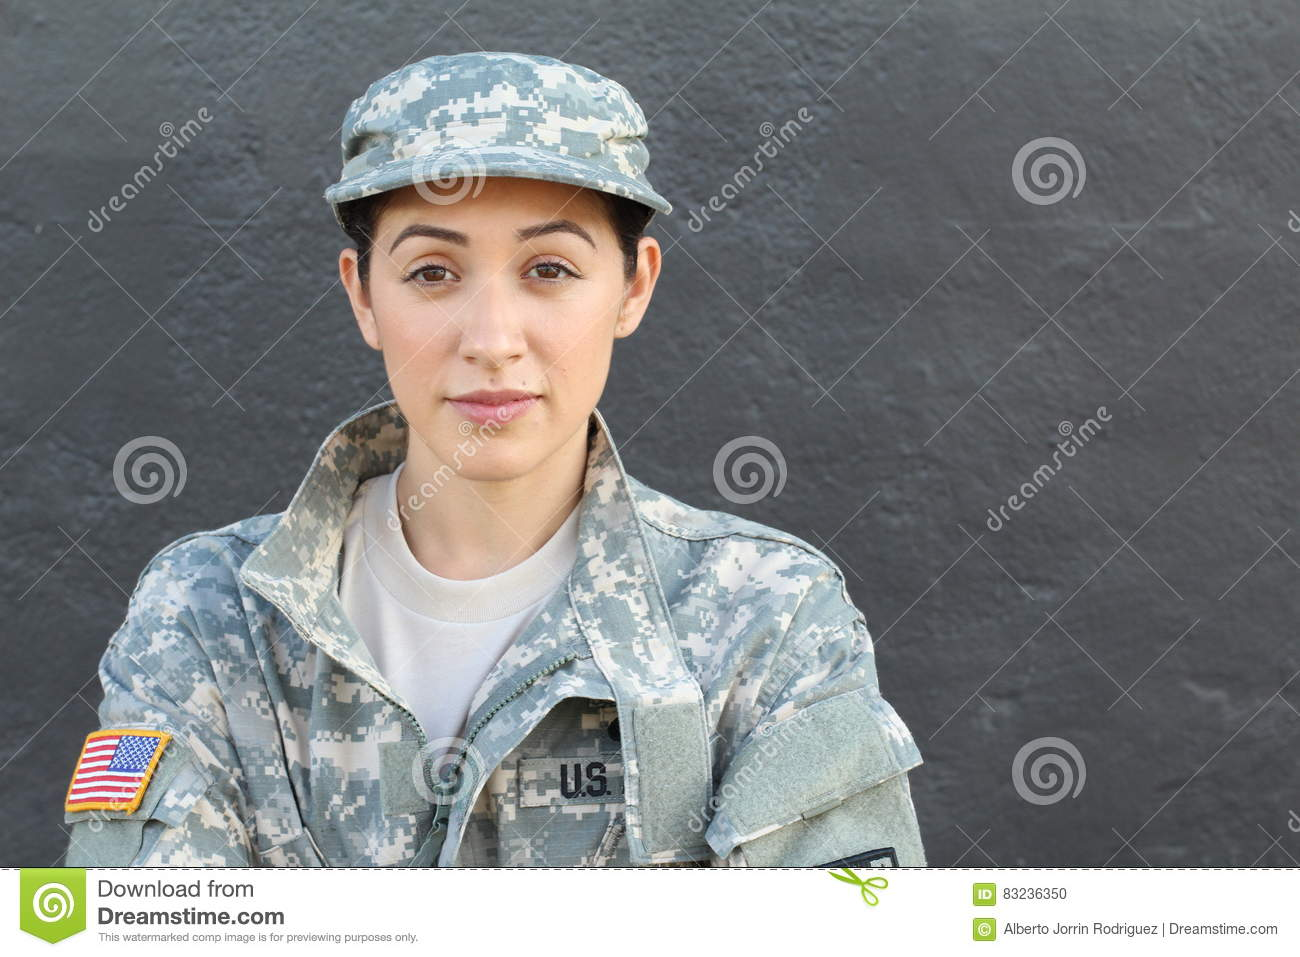 U.S. Army Soldier, Sergeant. Isolated close up showing stress, PTSD or sadness